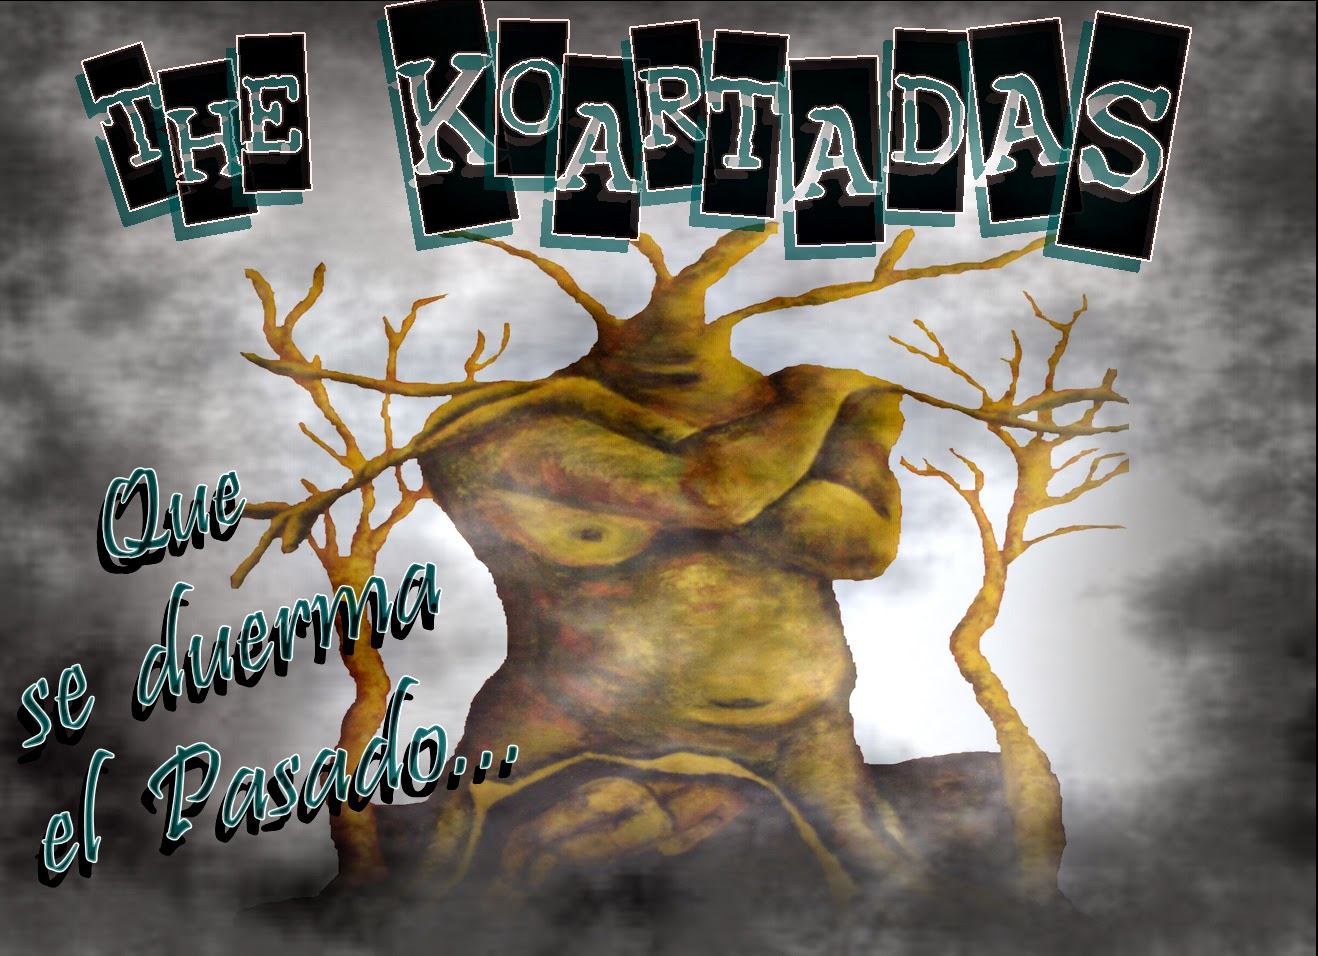 http://www.mediafire.com/download/5mfs50ep1b77mtt/THE+KOARTADAS+QUE+SE+DUERMA+EL+PASADO.rar